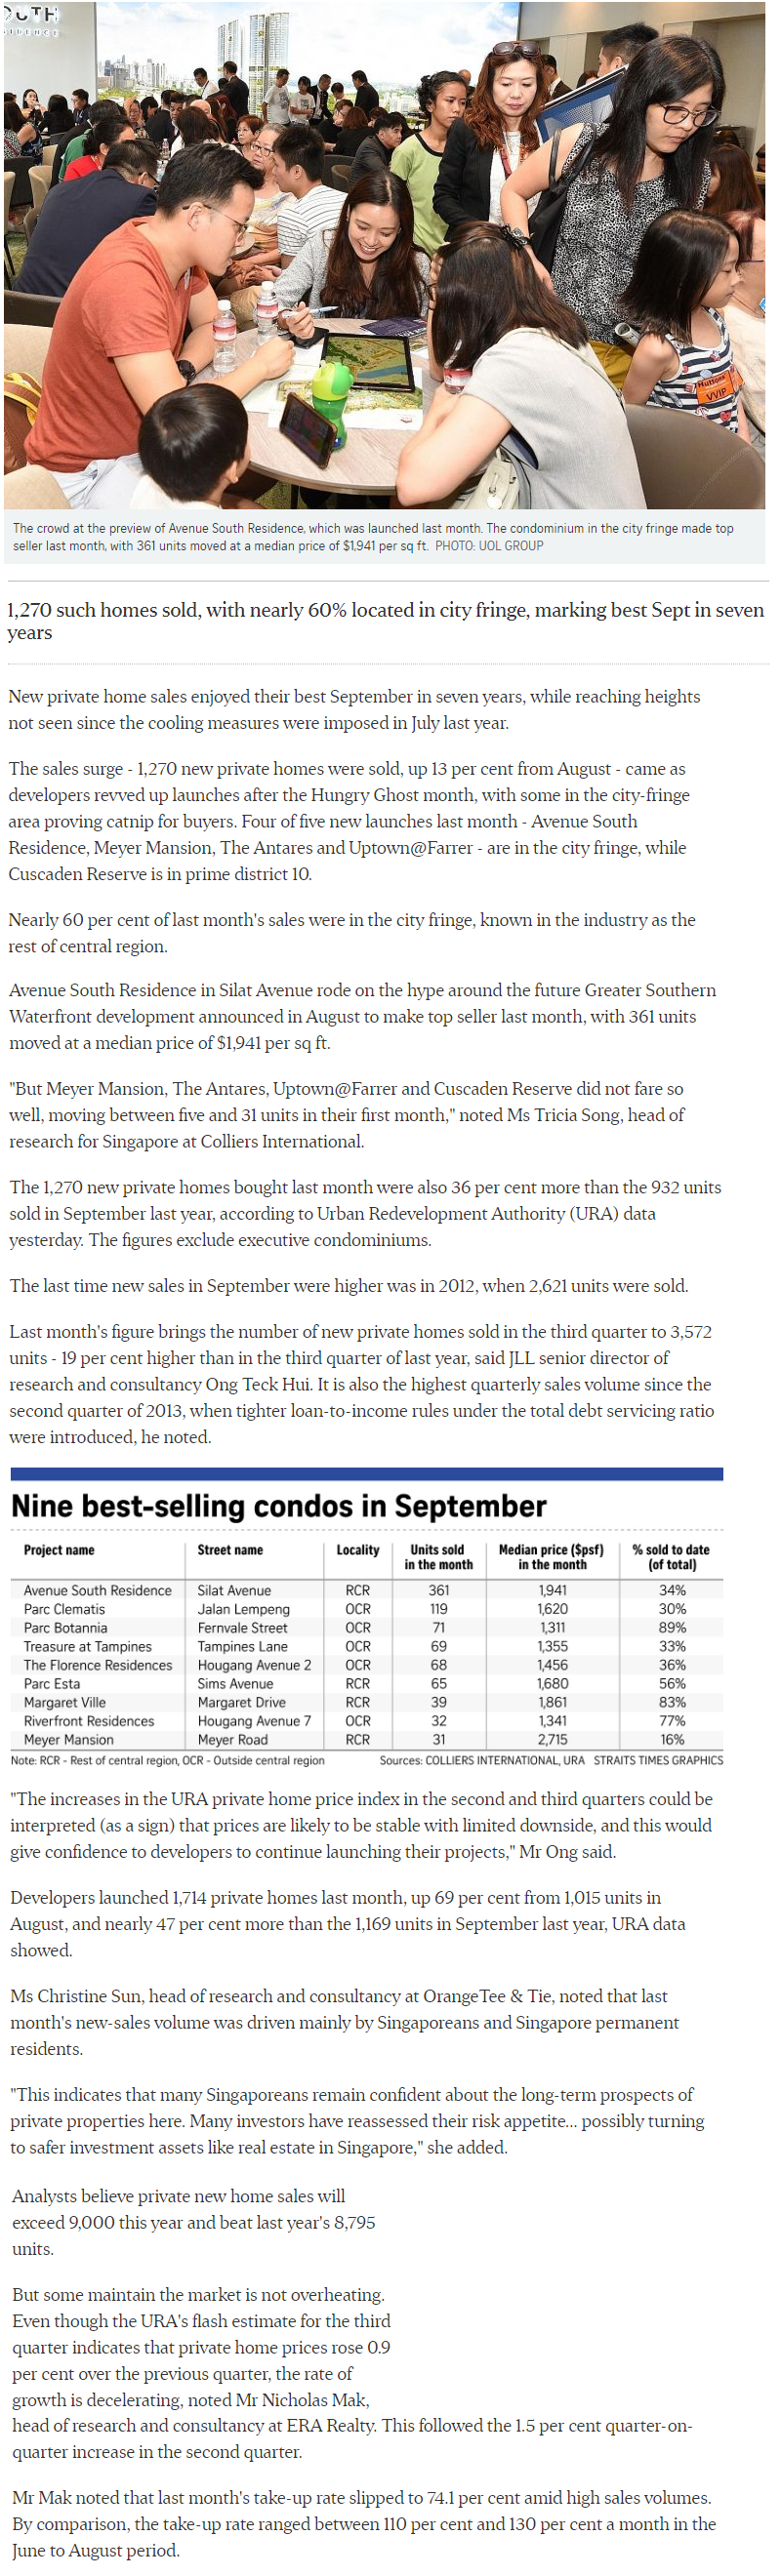 Hyll on Holland - New private Home Sales Hit A Hight In September